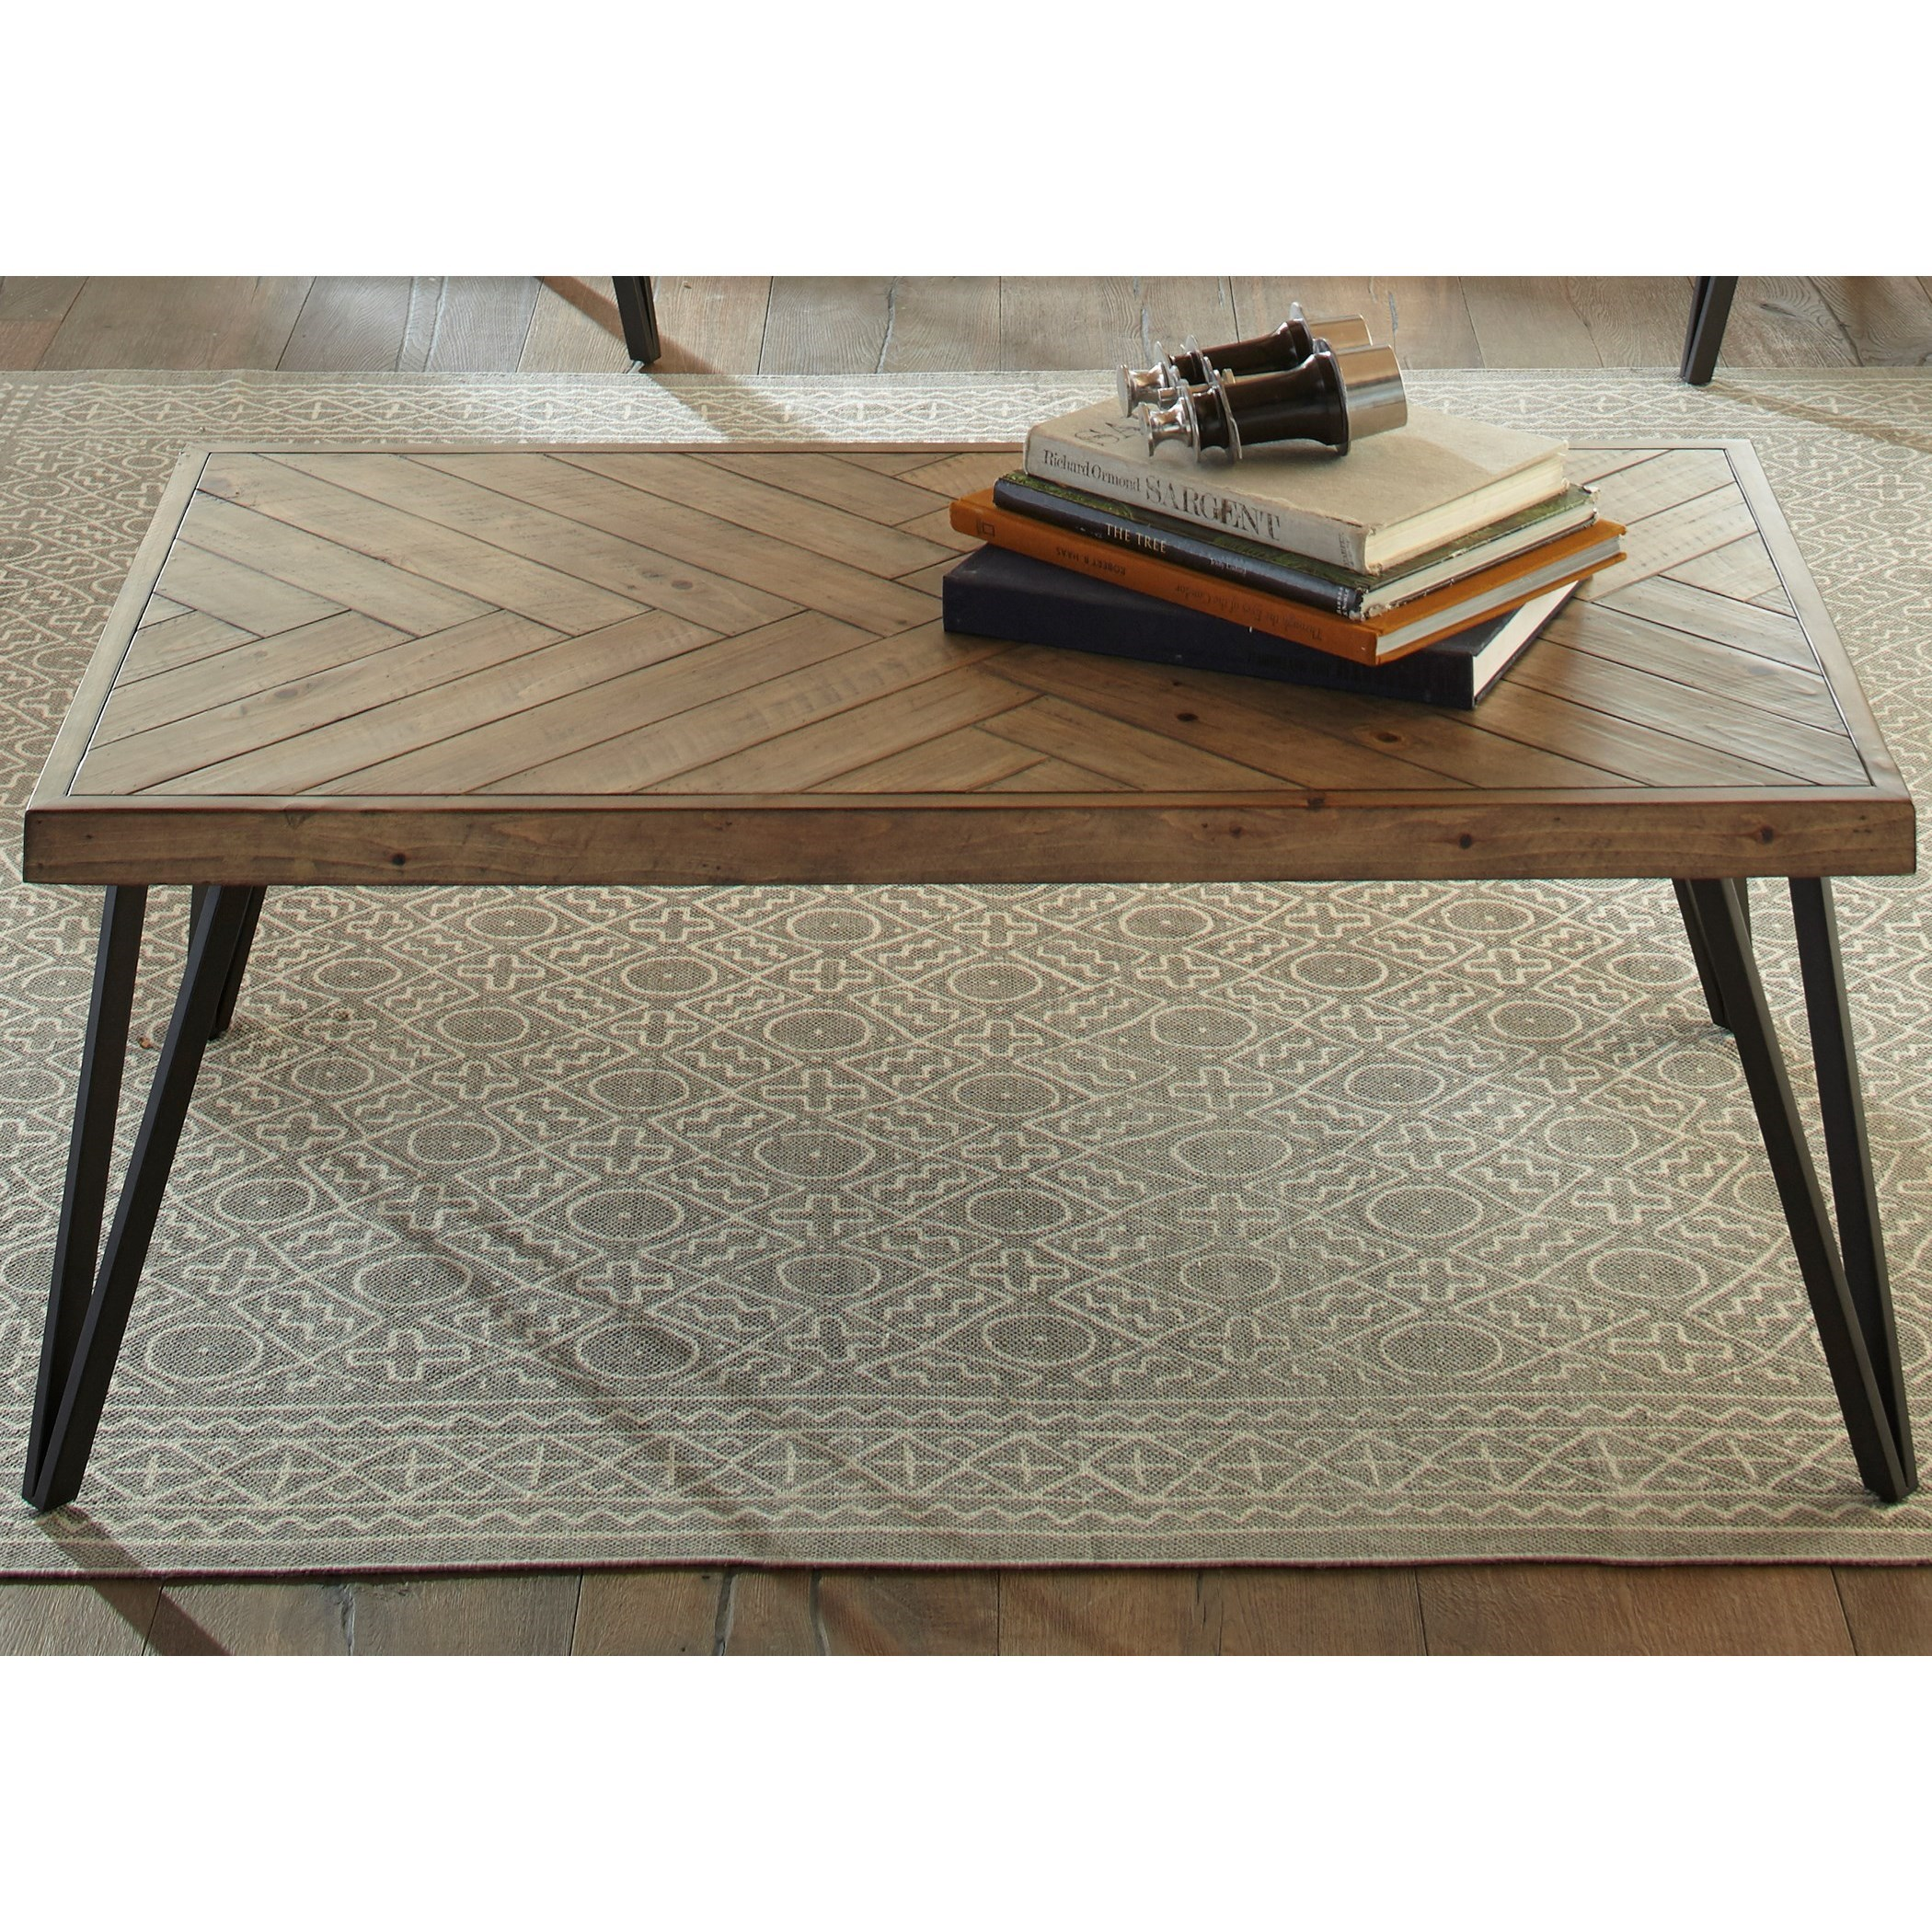 Contemporary Rectangular Cocktail Table with Herringbone Parquet